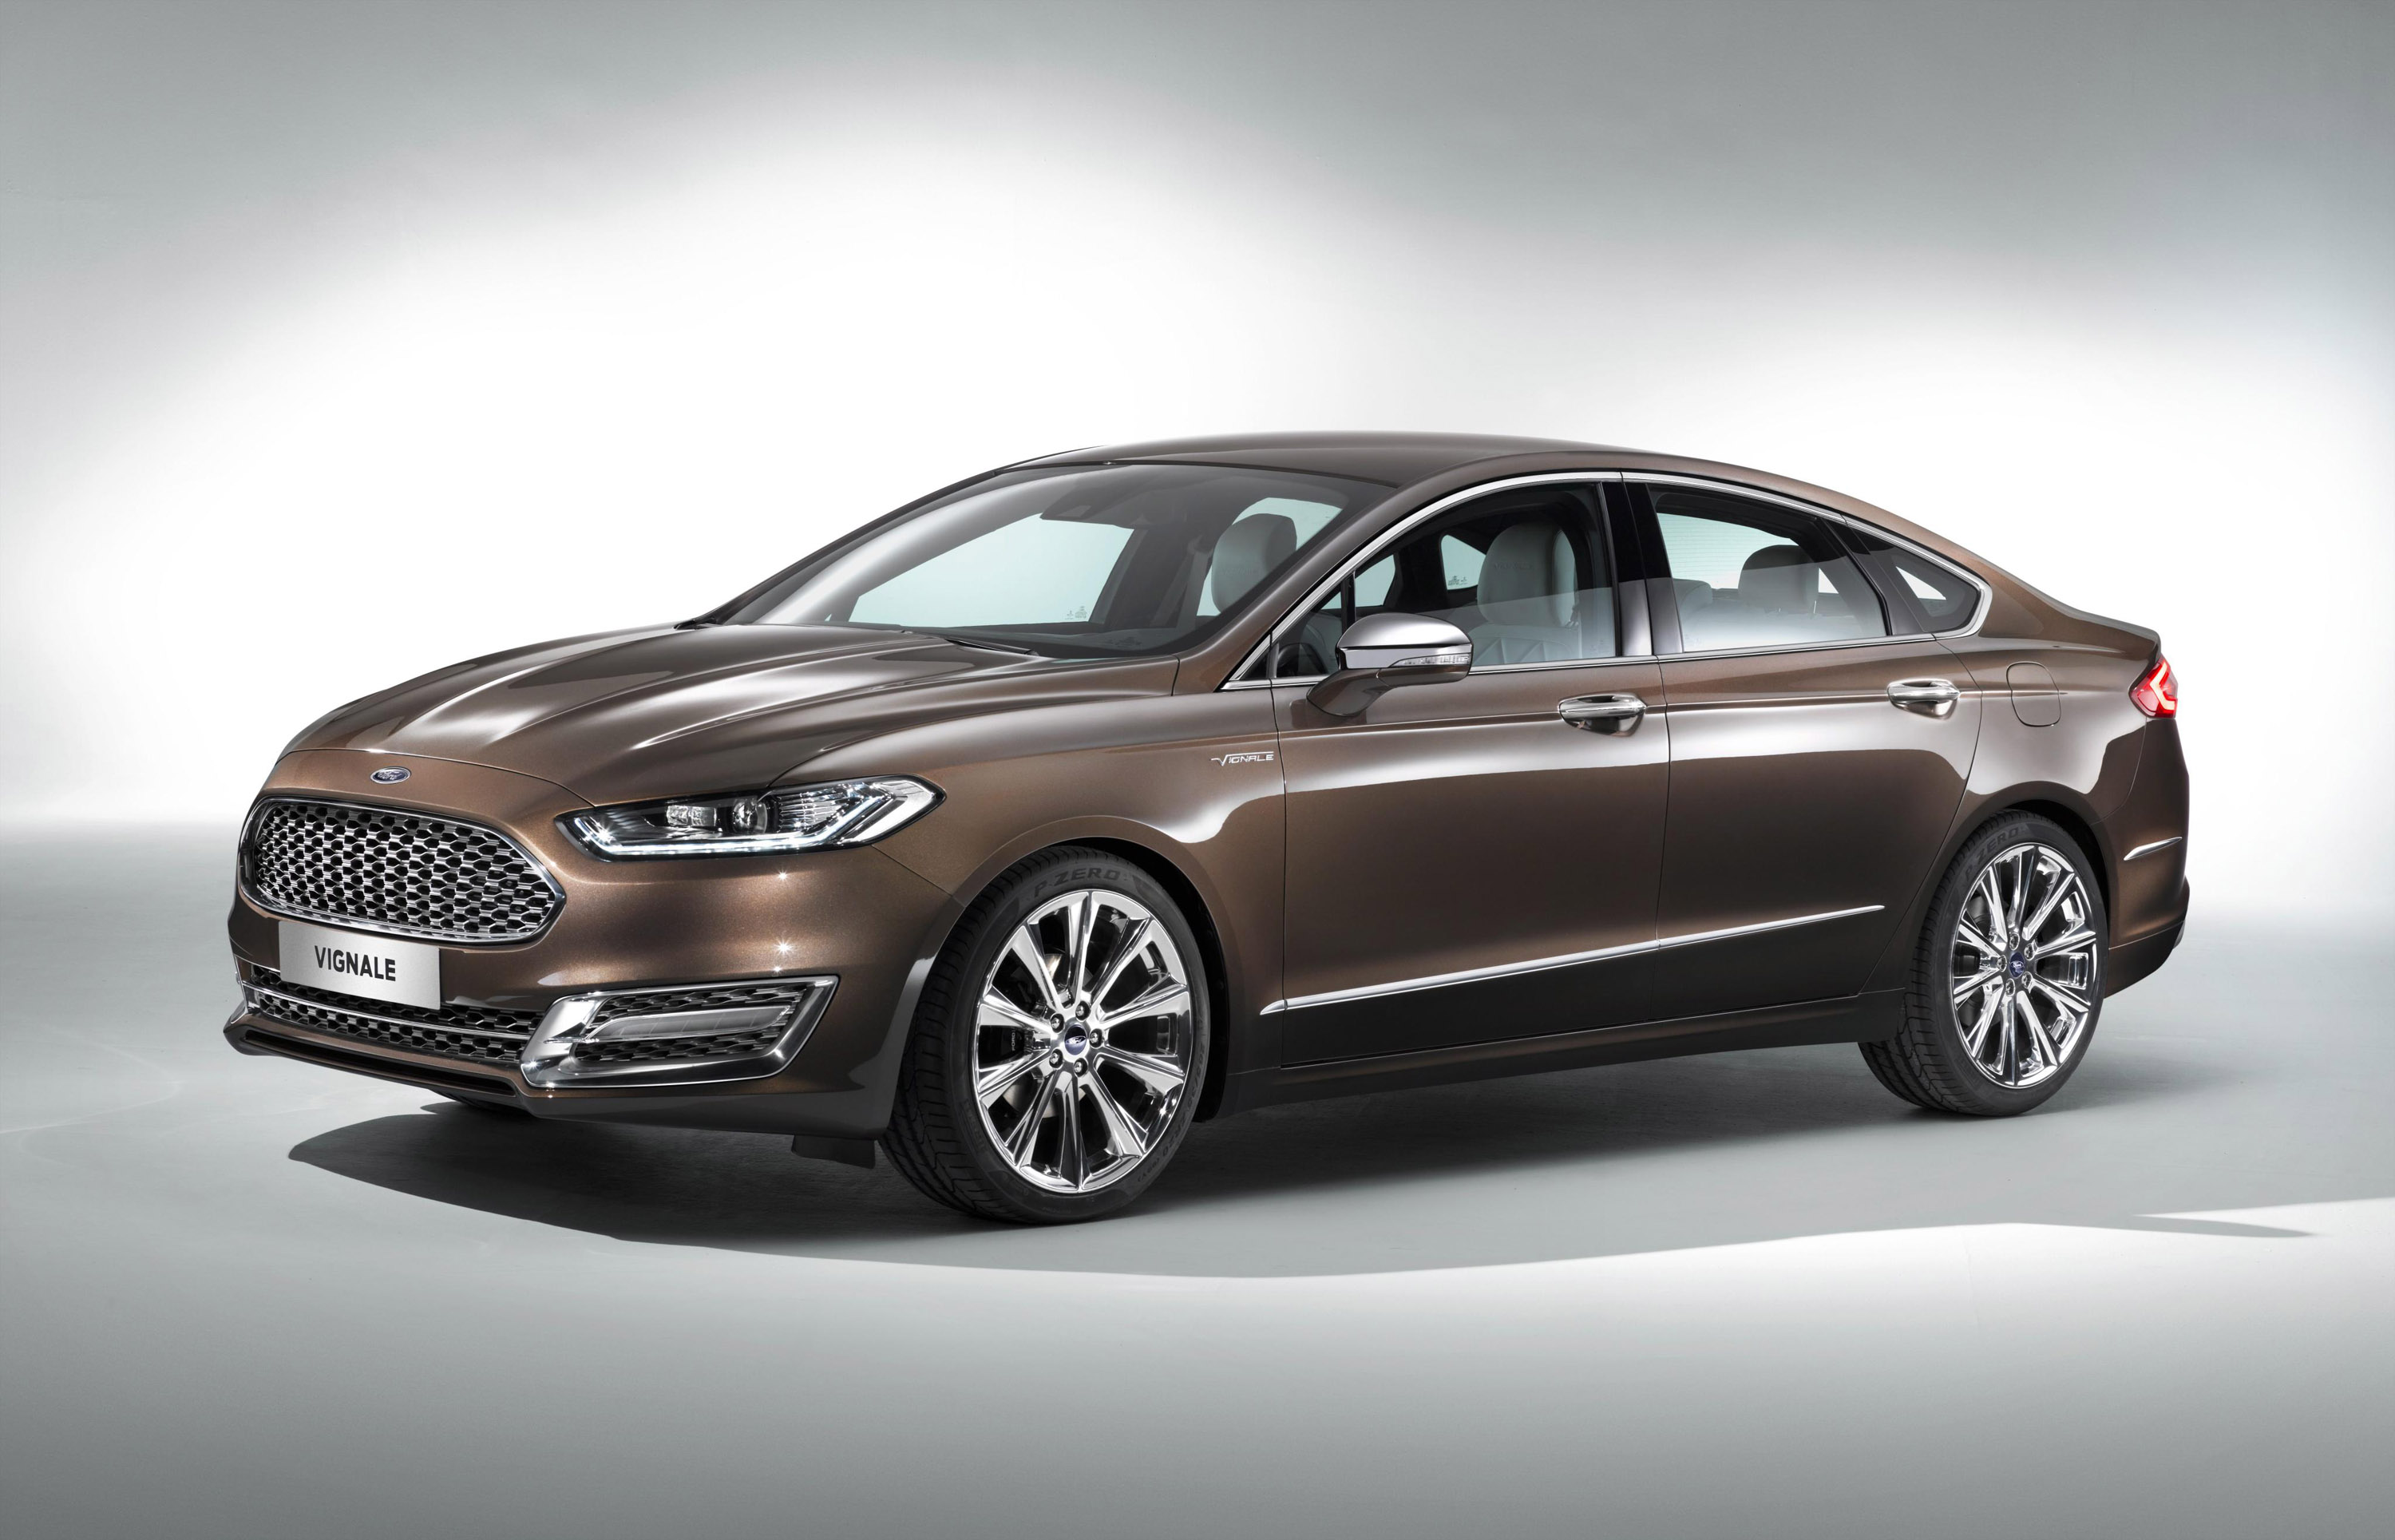 2015 ford mondeo based on the cd4 platform. Black Bedroom Furniture Sets. Home Design Ideas